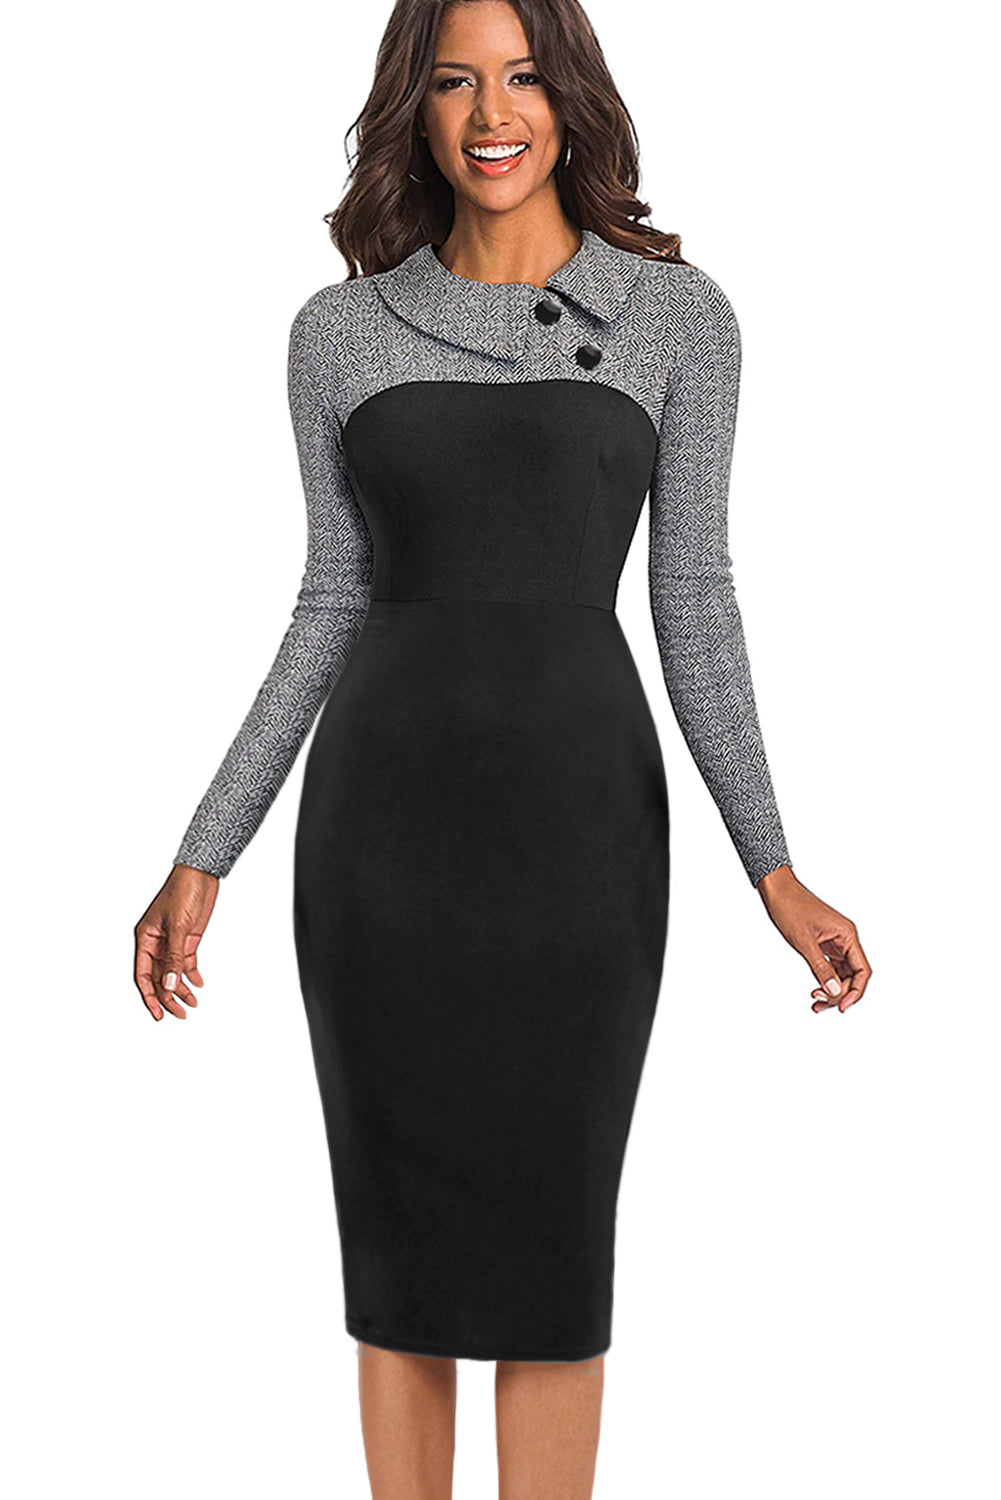 Gray Vintage Turn-Down Collar Pinup Button Midi Dress